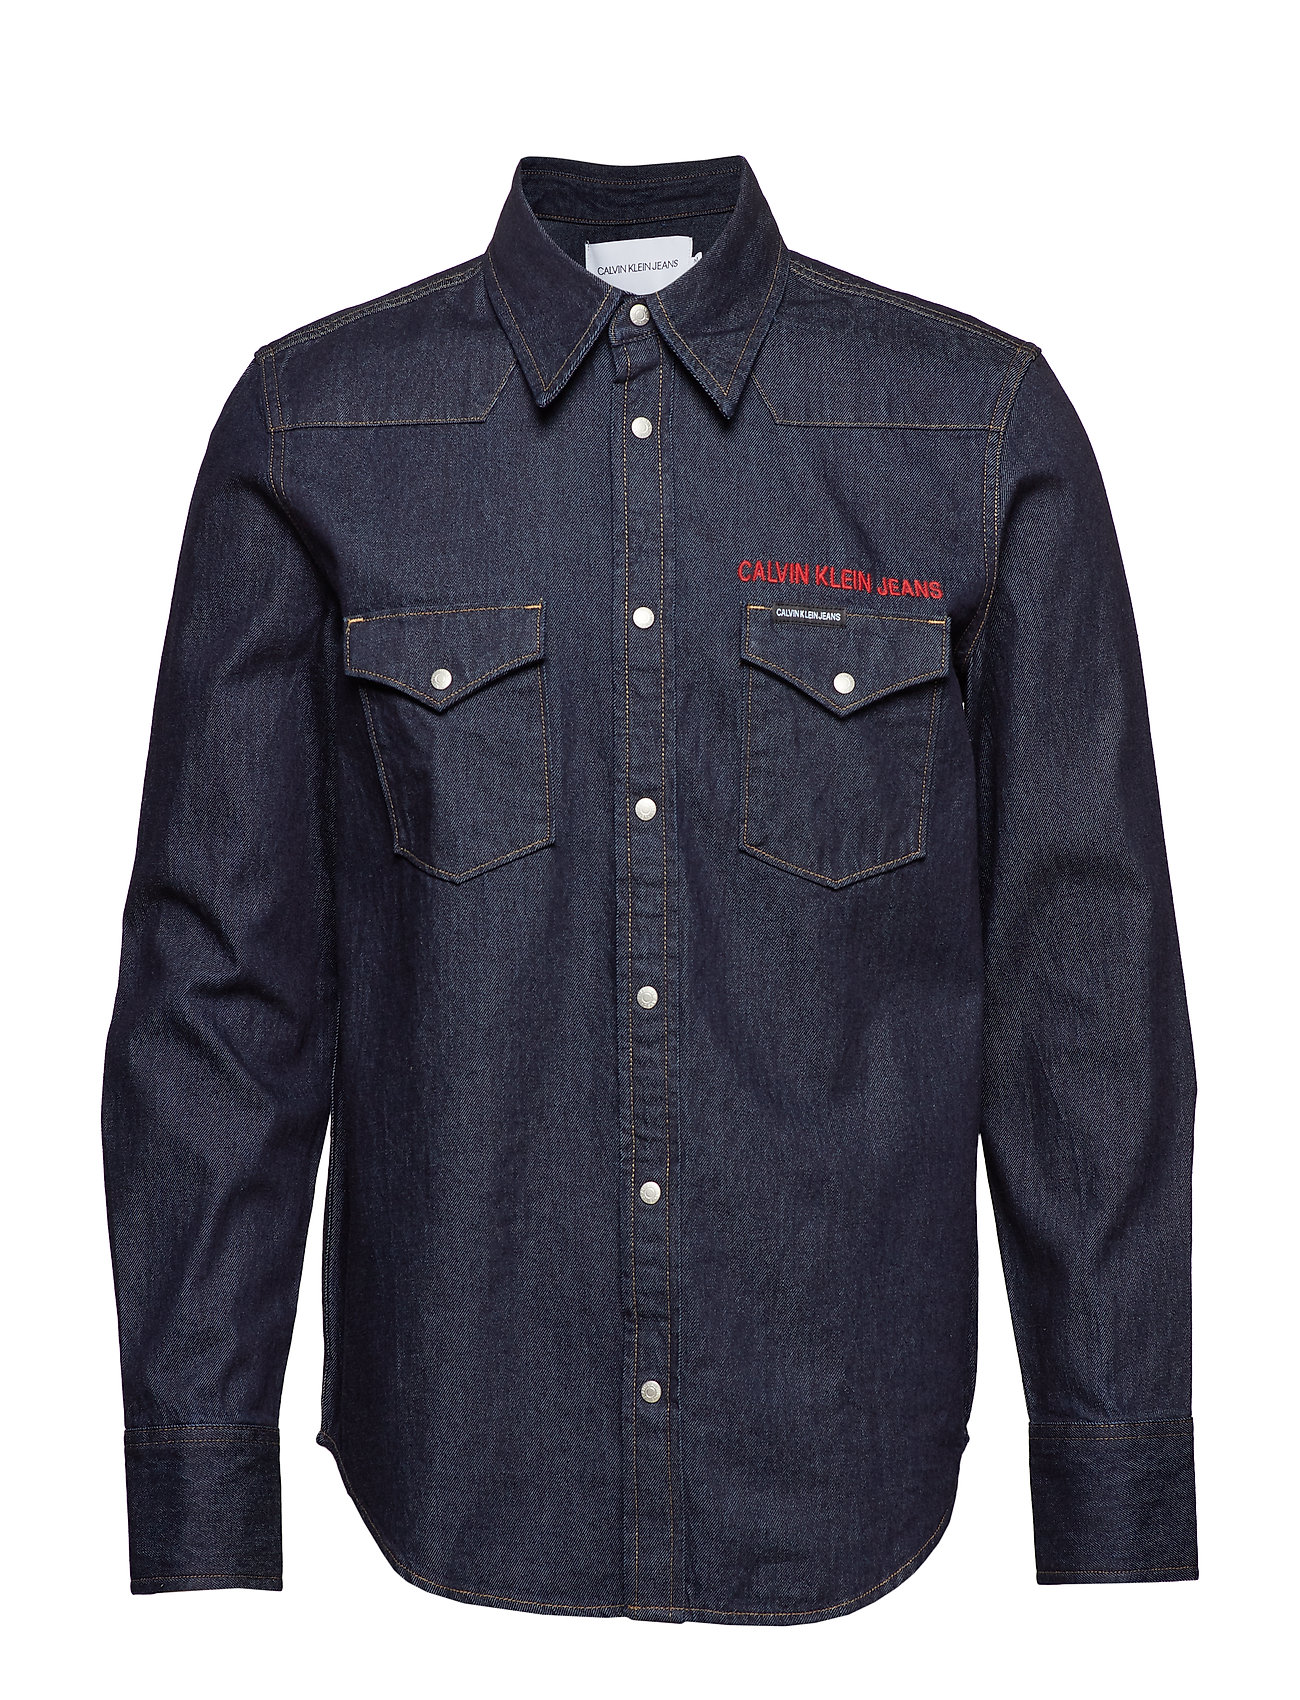 Calvin Klein Jeans FOUNDATION WESTERN SHIRT - RINSE WITH RED EMBROIDERY